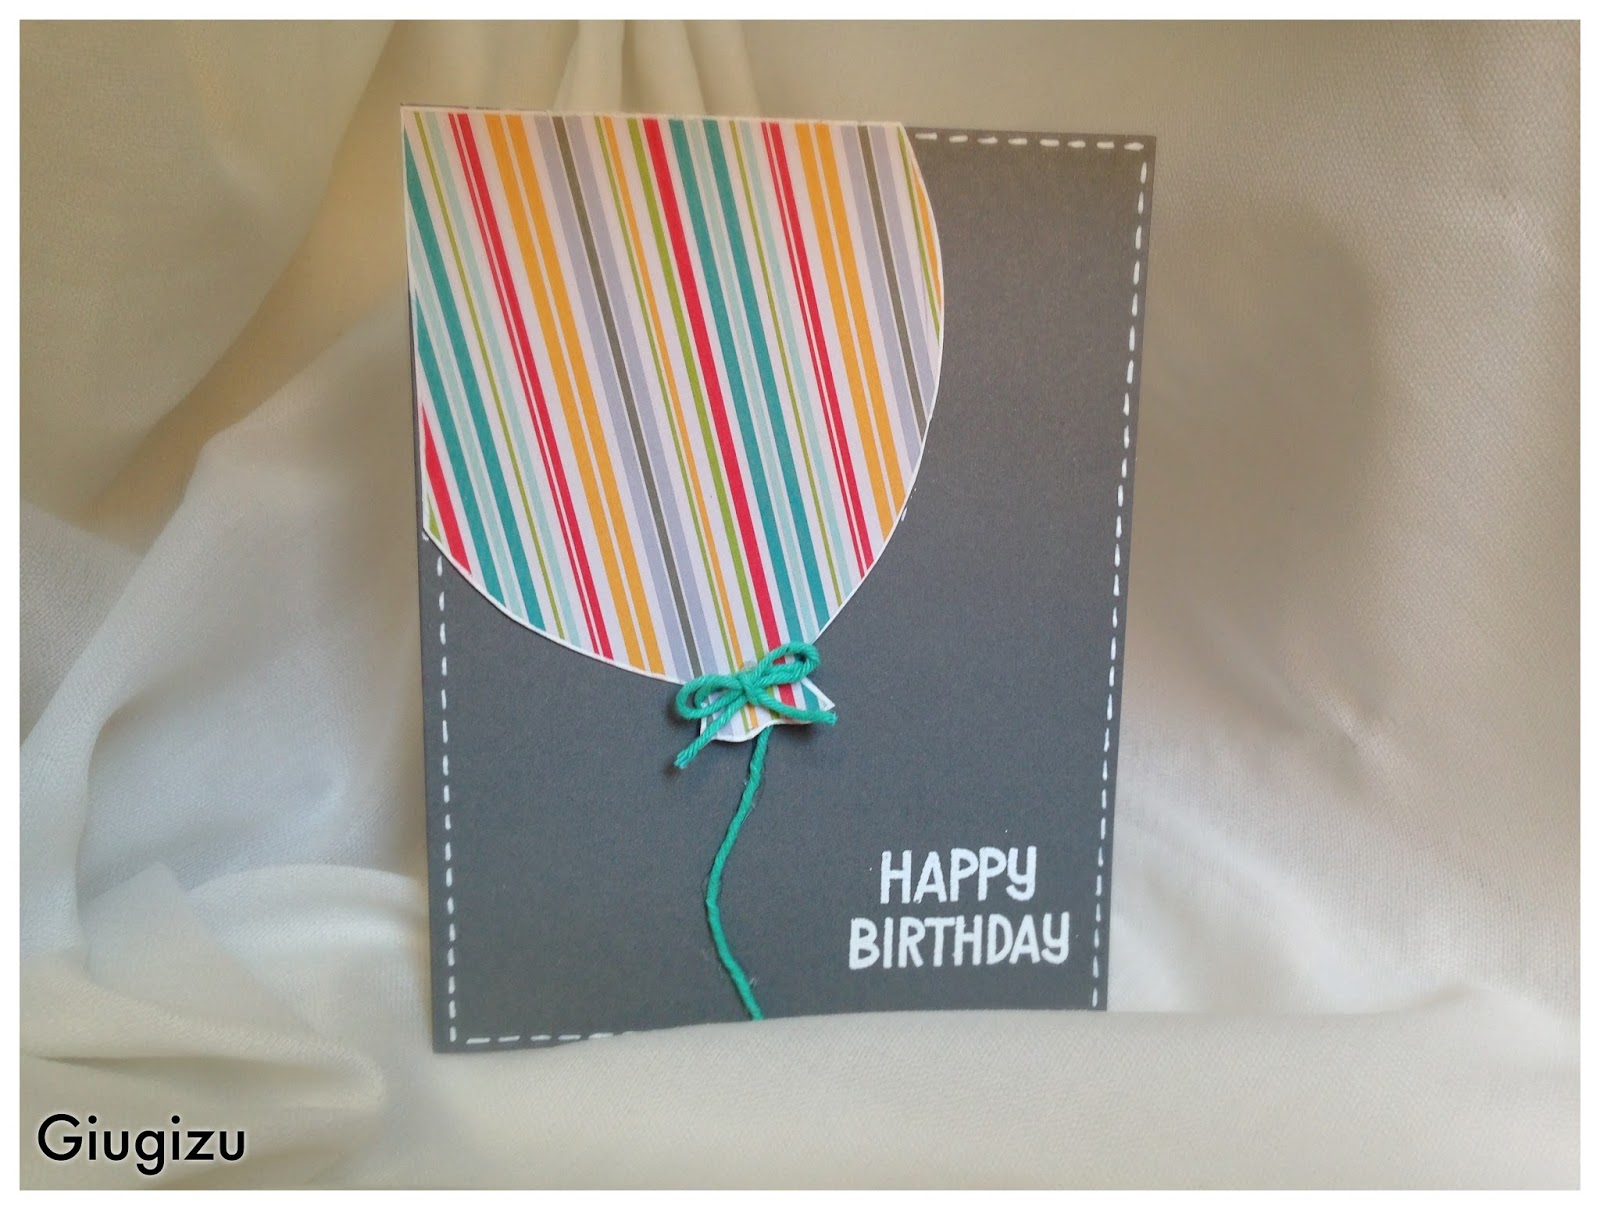 Amato Giugizu's corner: Handmade Flying Balloon birthday card  DR73